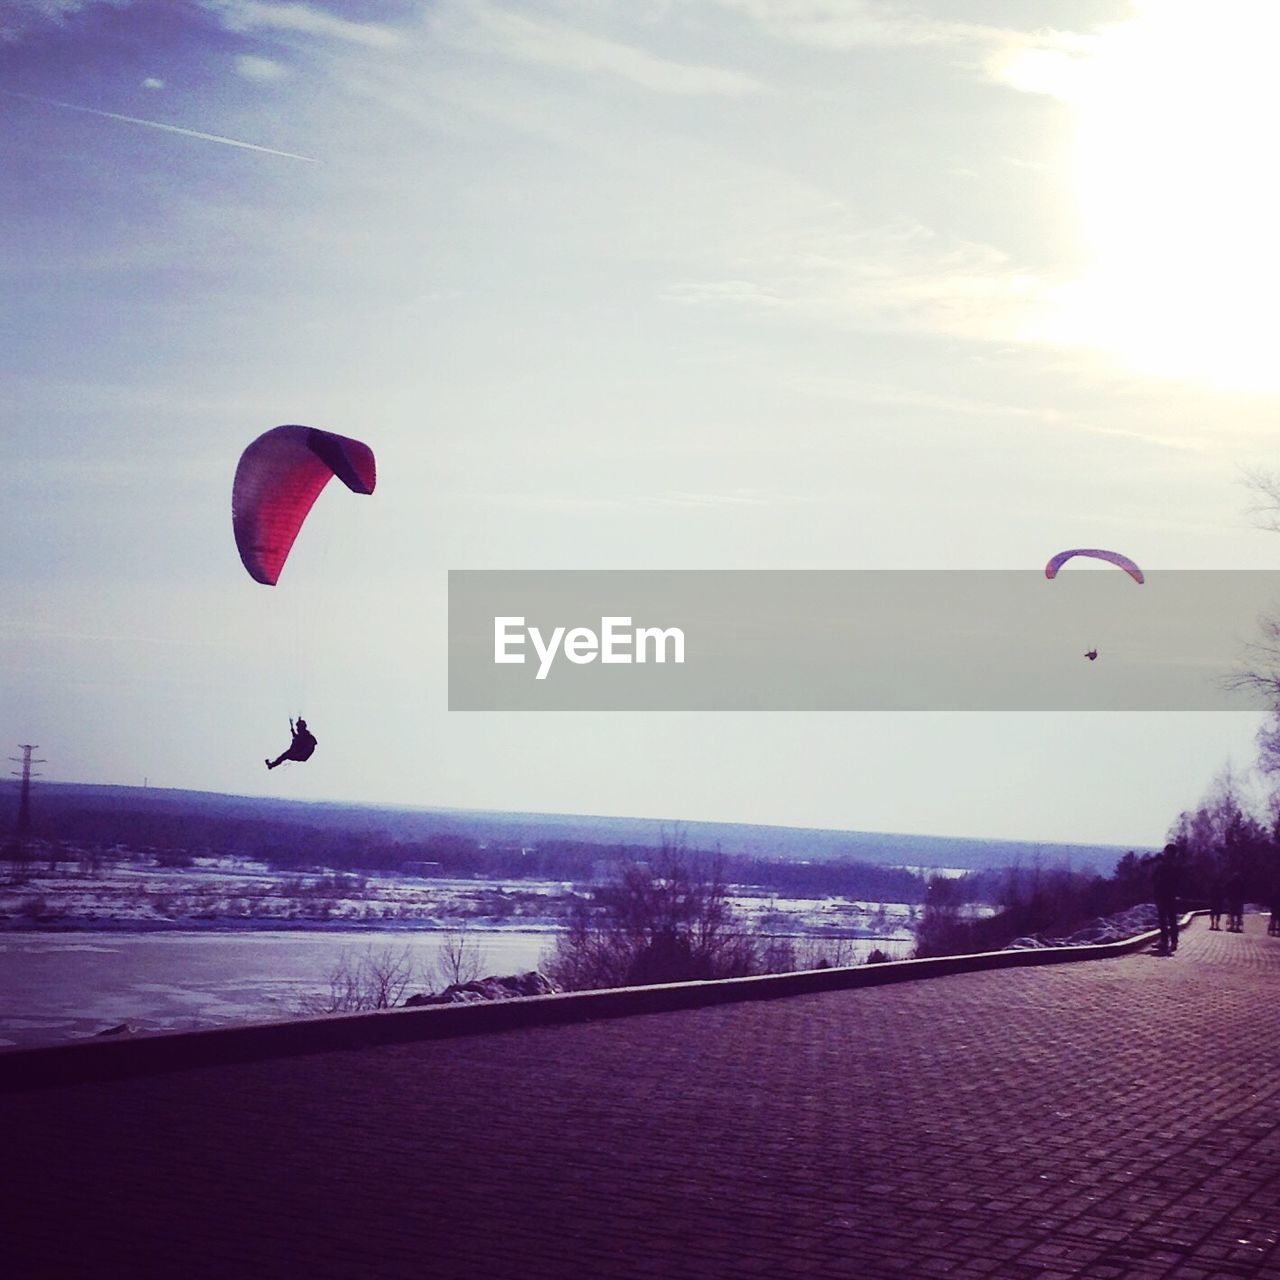 mid-air, adventure, nature, leisure activity, outdoors, sky, parachute, extreme sports, day, flying, real people, landscape, one person, paragliding, people